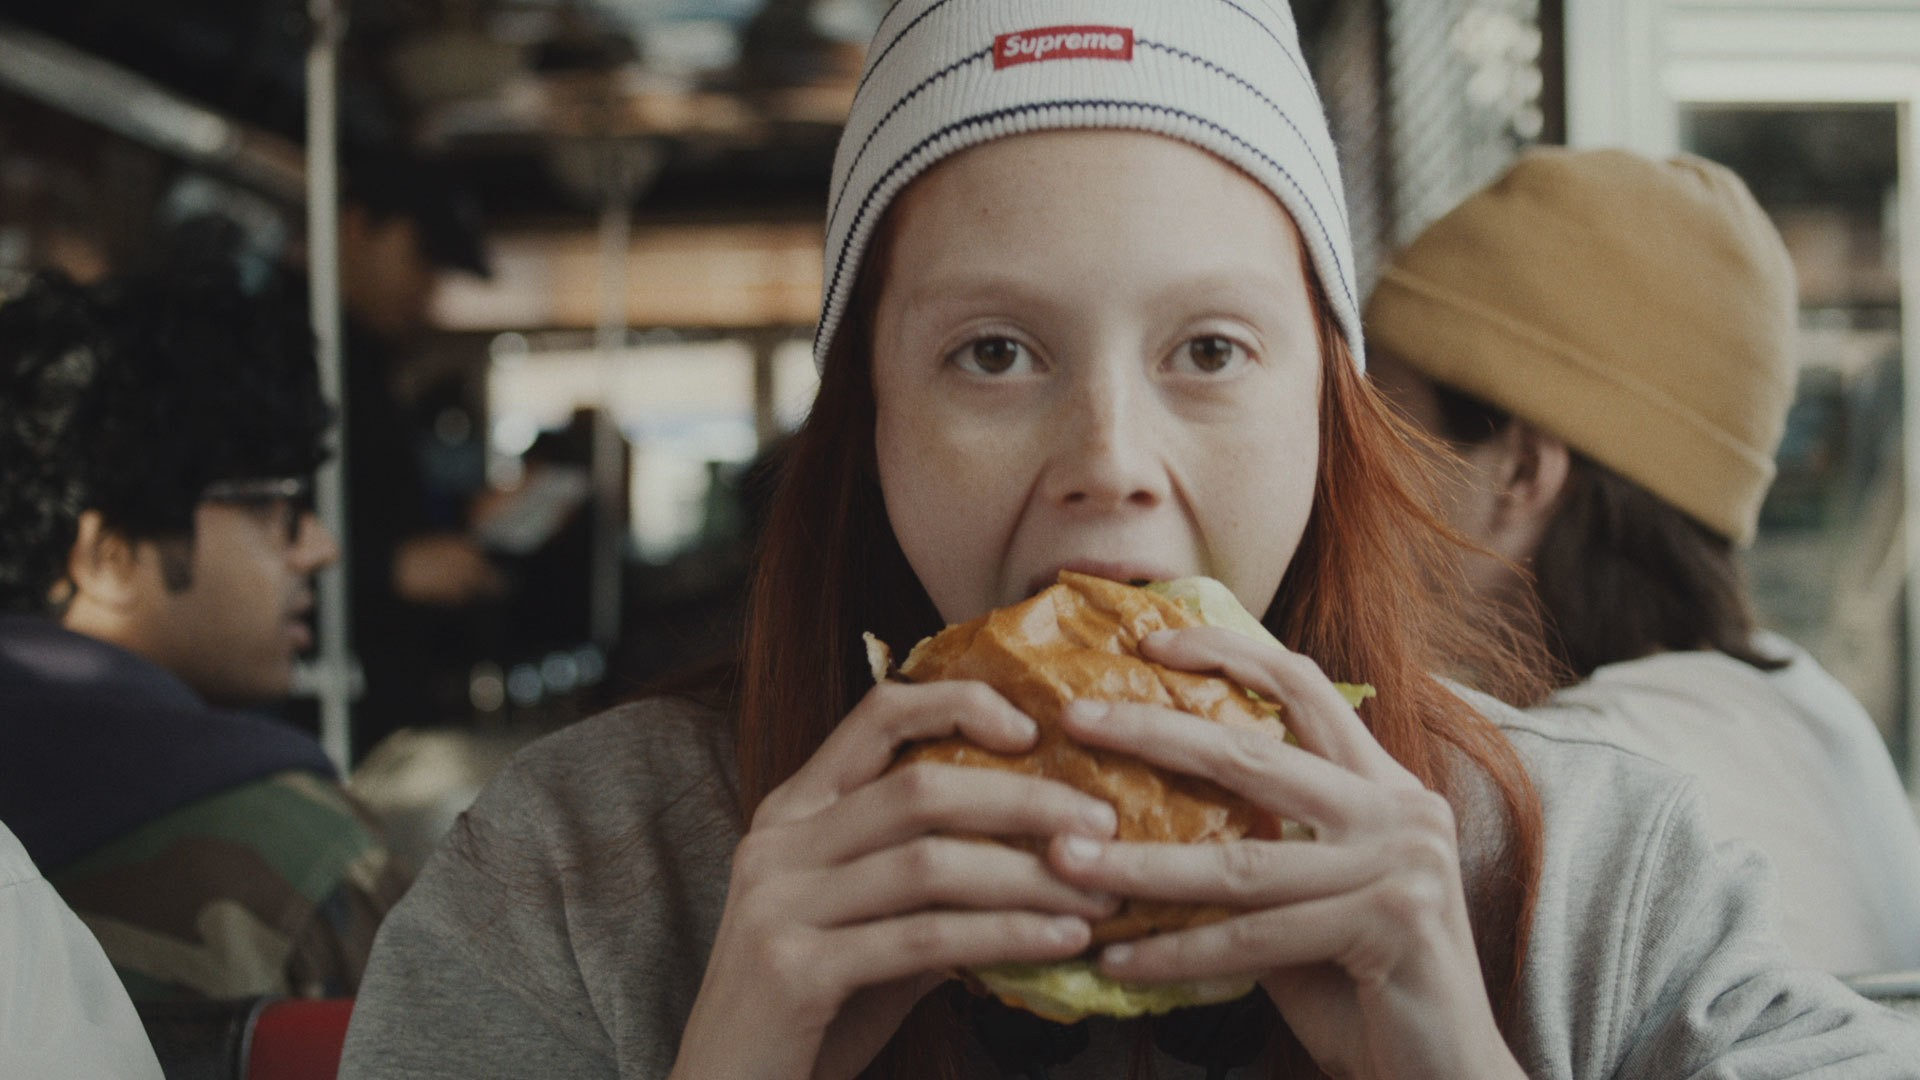 natalie westling's guide to being a modern lady